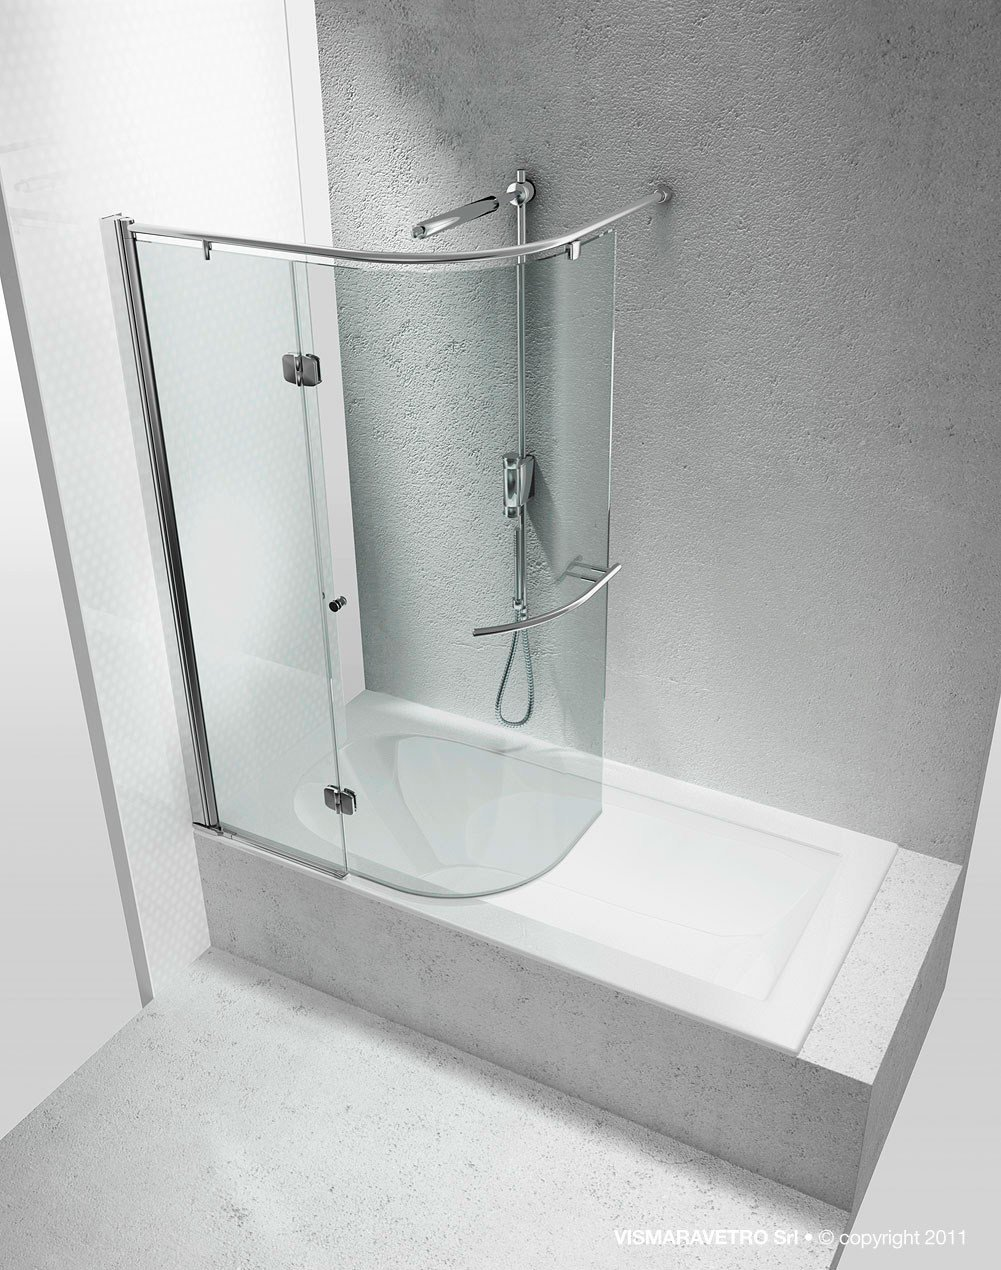 Tempered Glass Bathtub Wall Panel Replay Sr Replay